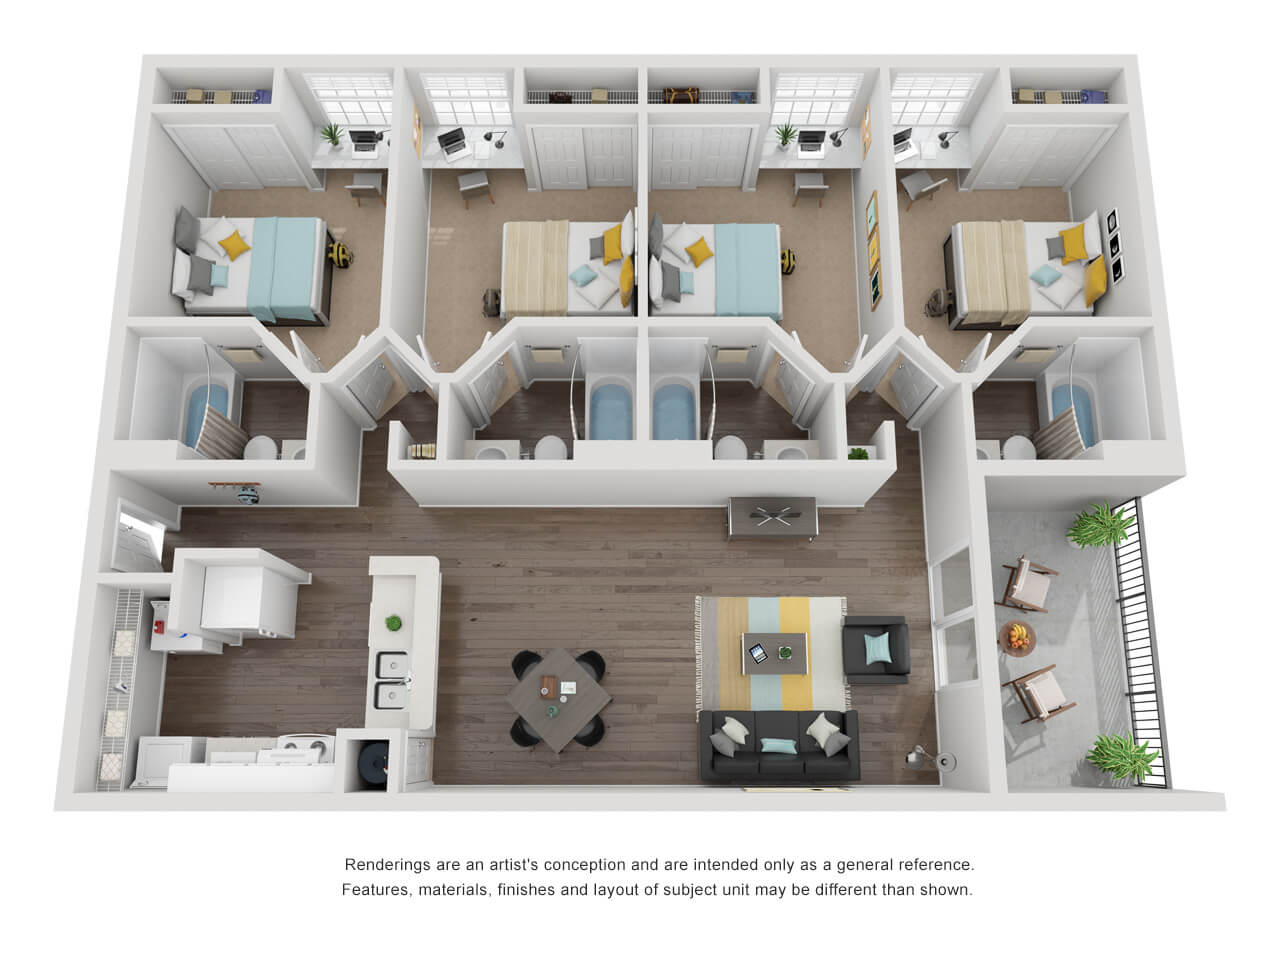 4 bed, 4 bath layout with kitchen, living and balcony on the left, and bedrooms with bathrooms in a column on the right.